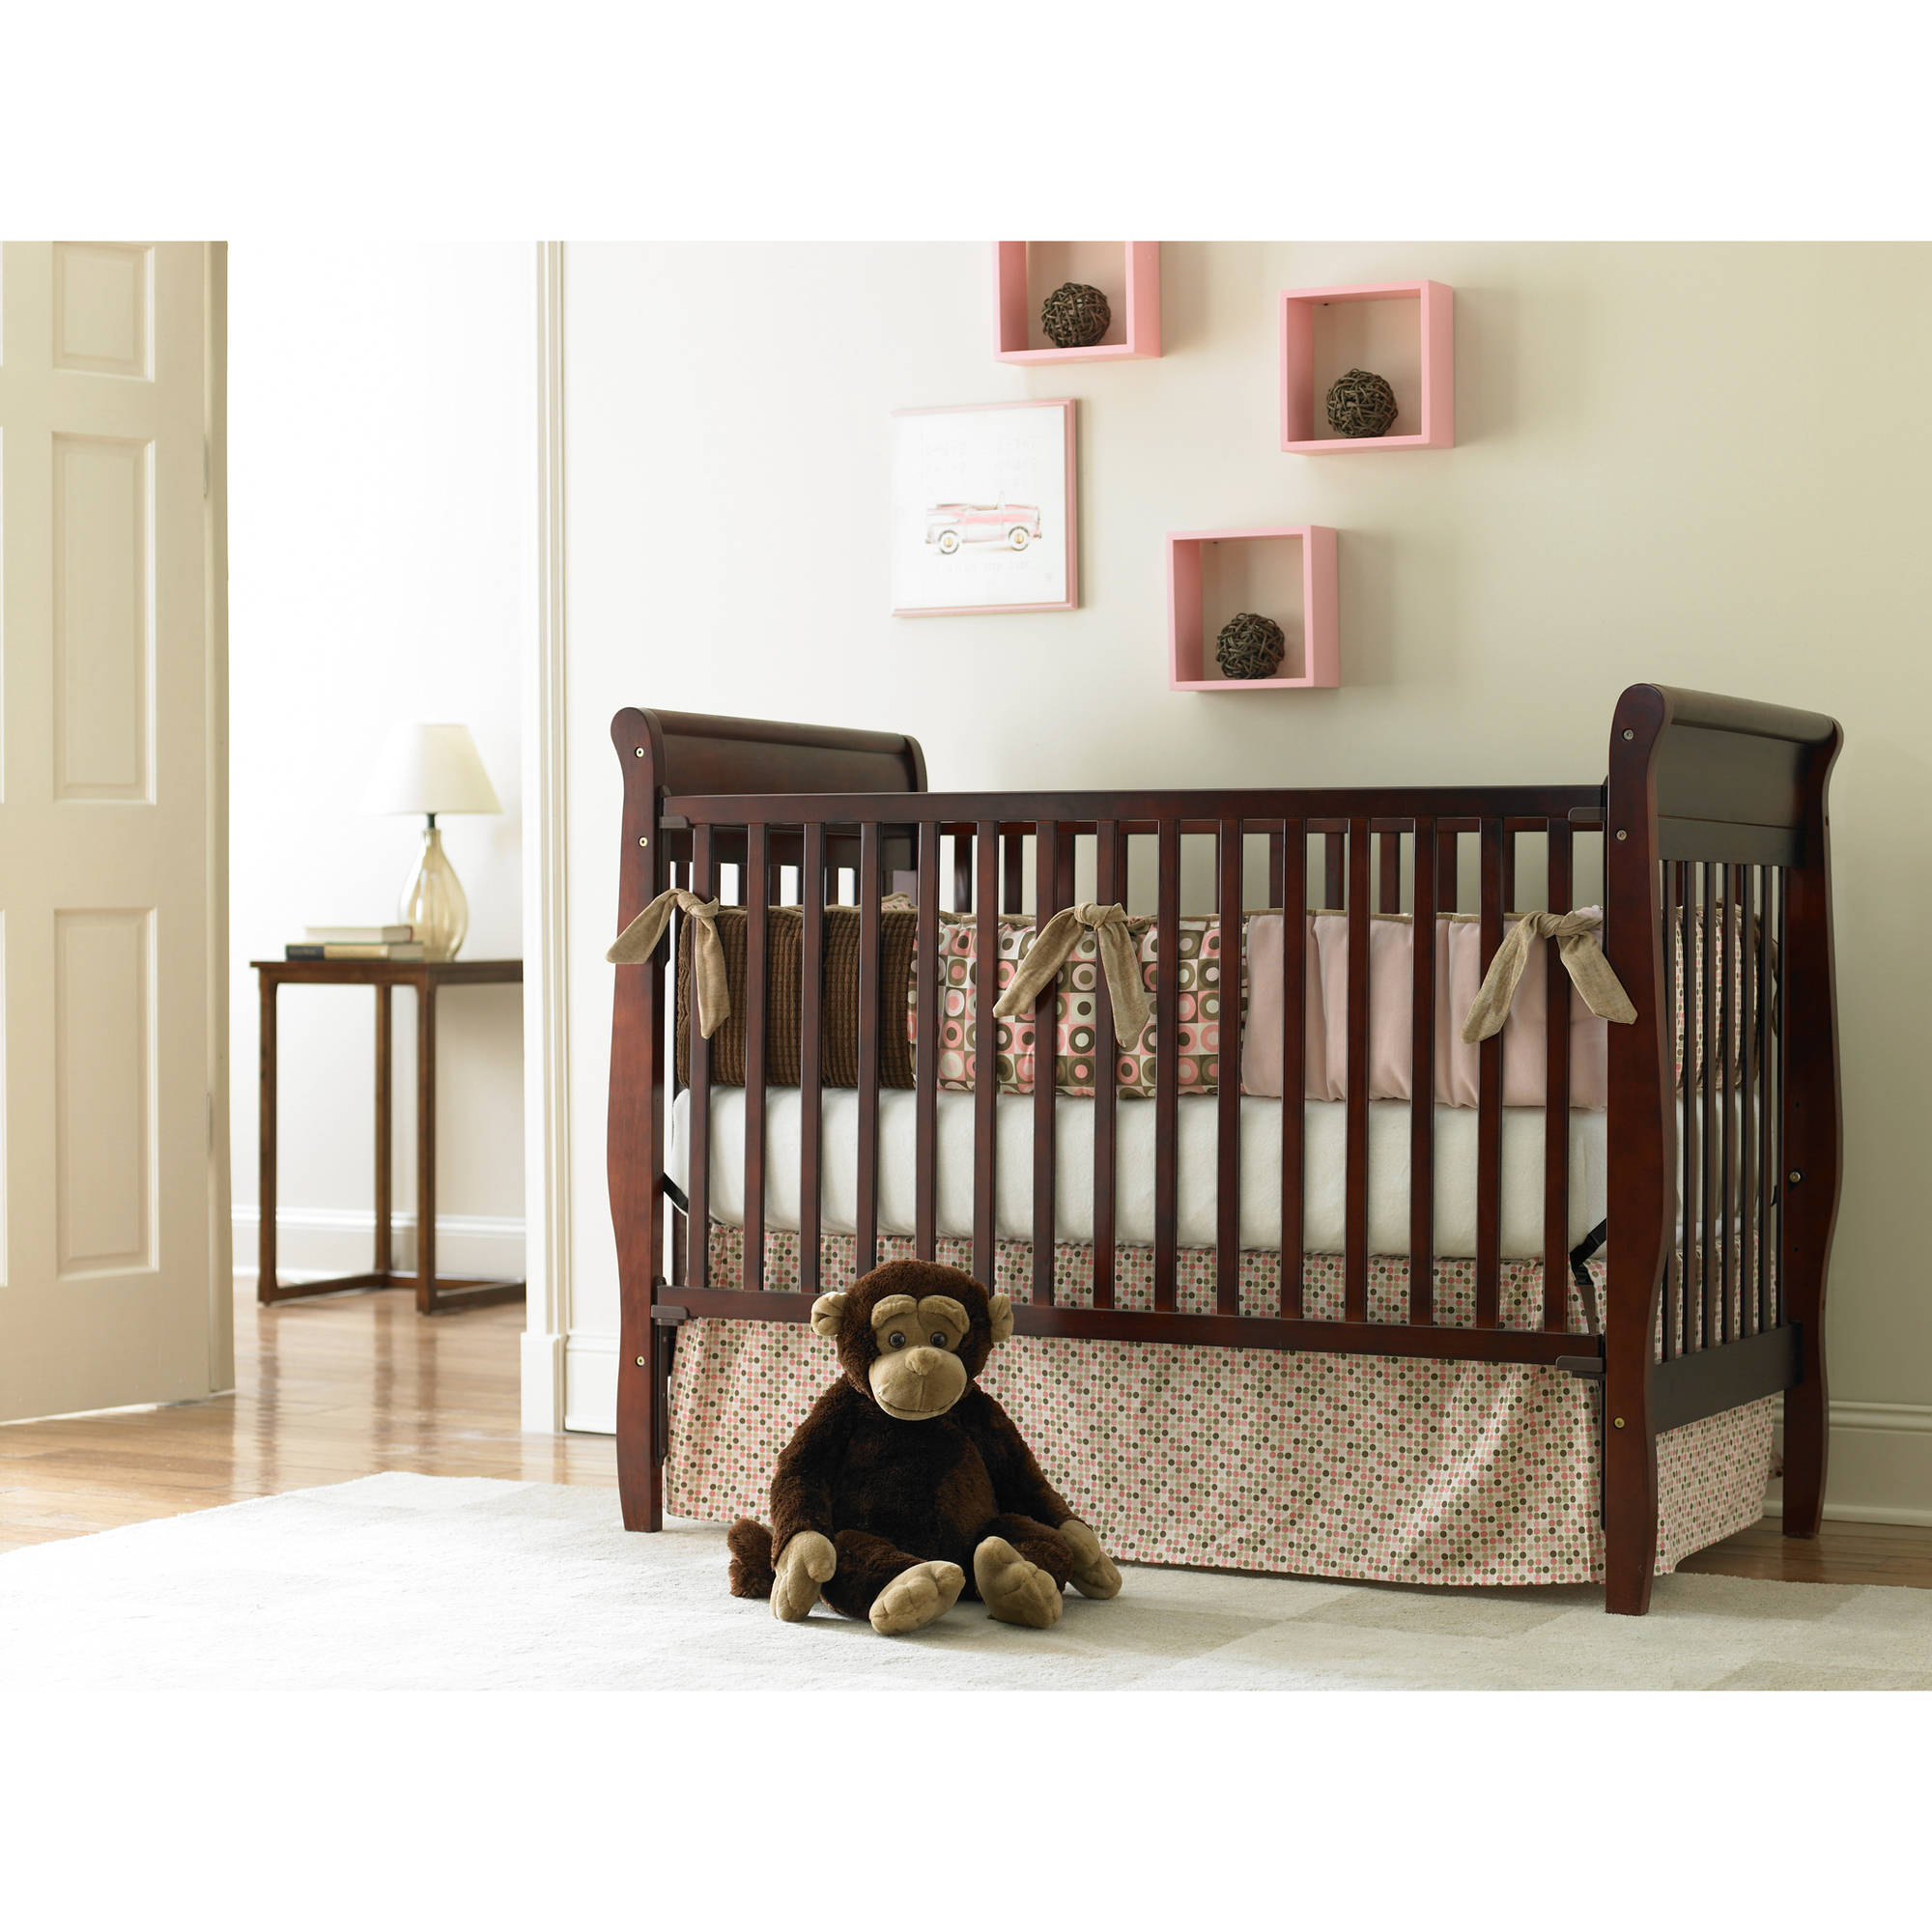 baby dark cribs bassettbaby for wood convertible cherry in chocolate less crib hayden pin